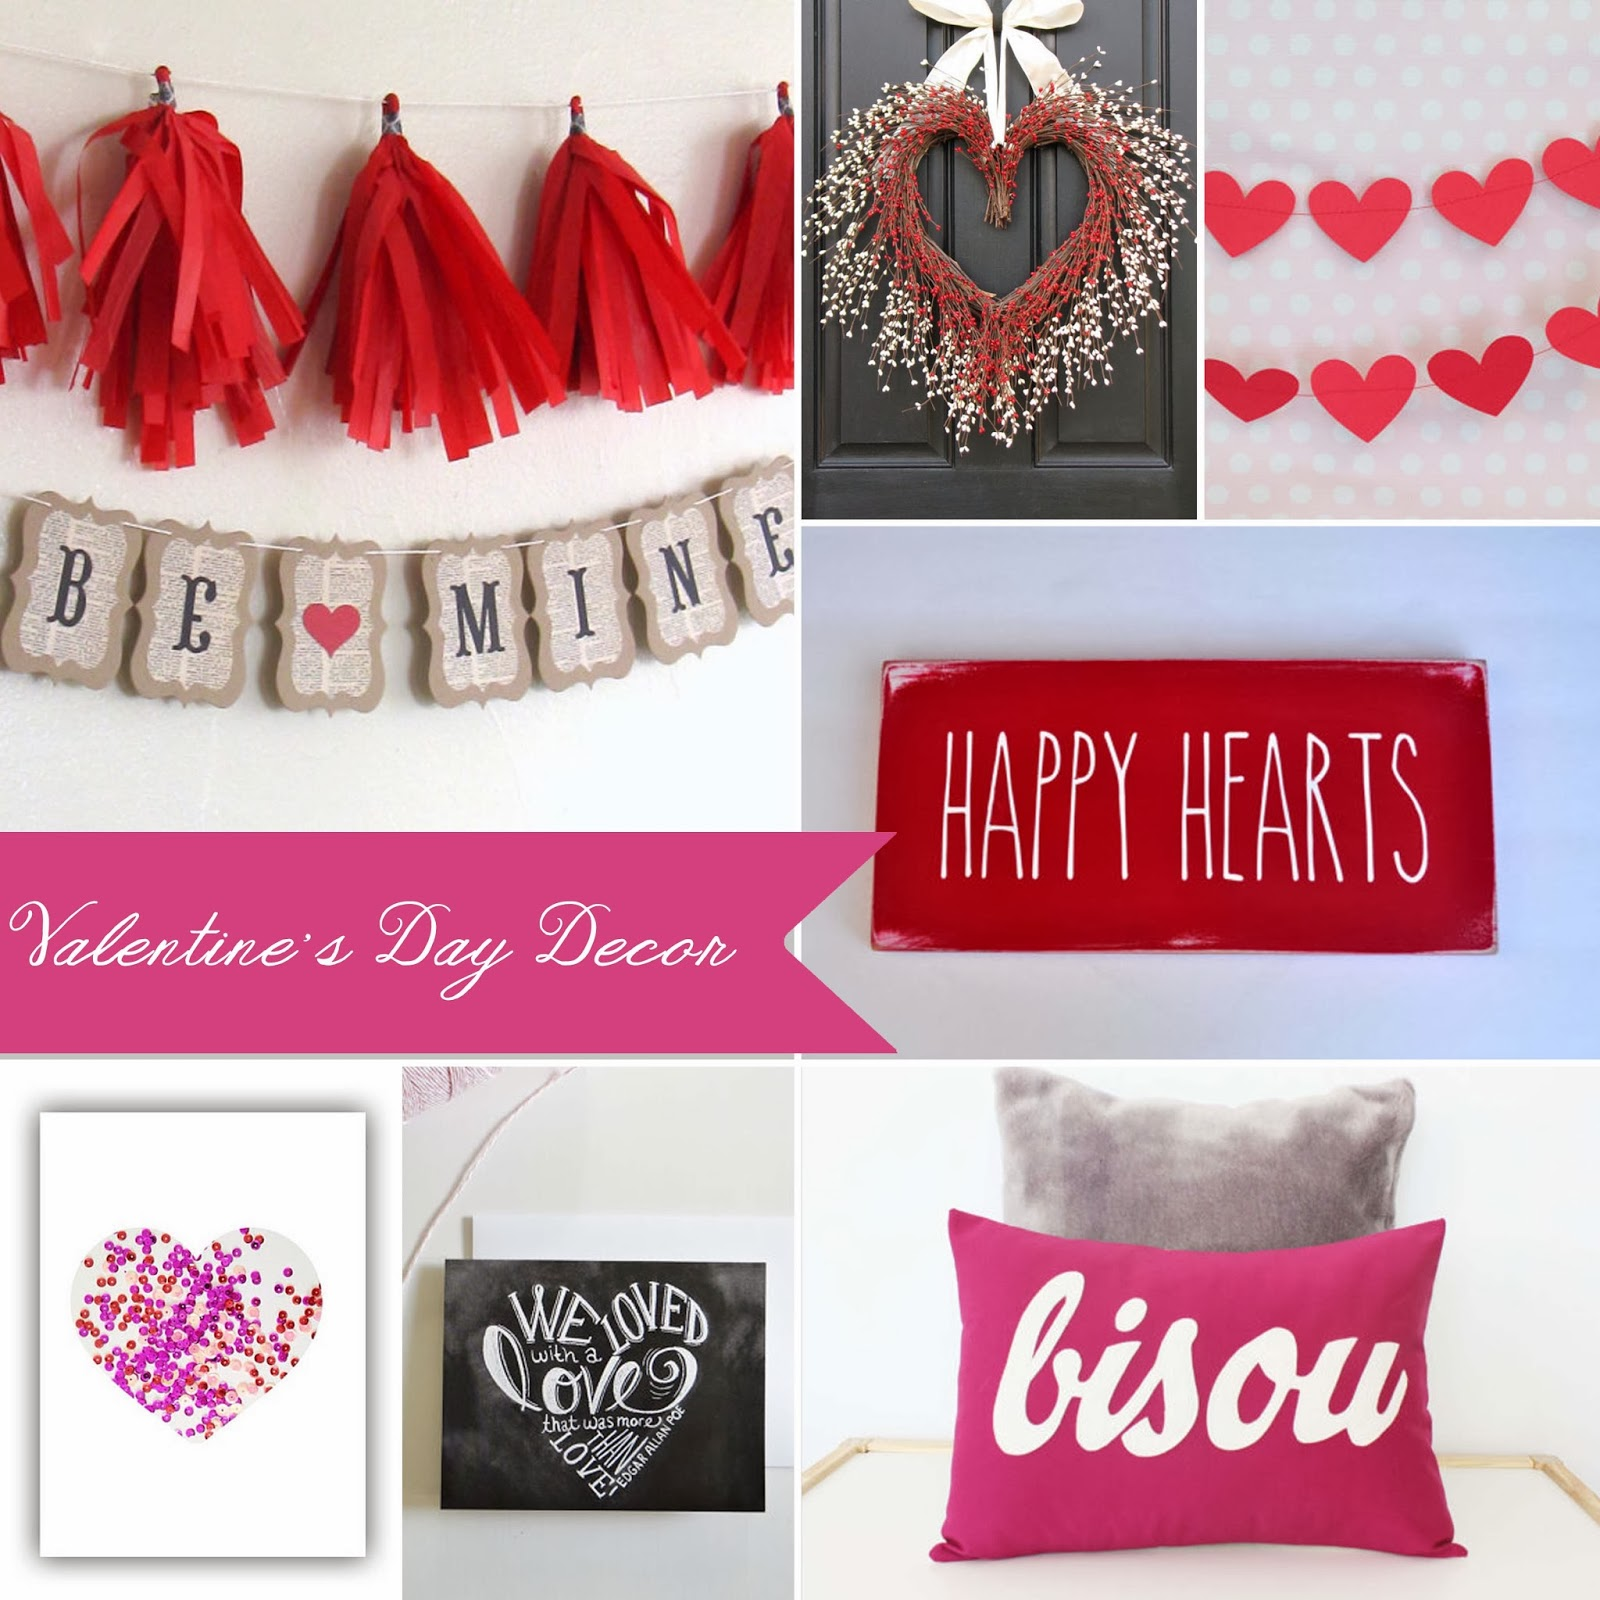 Carissa Miss: Valentine's Day Decor